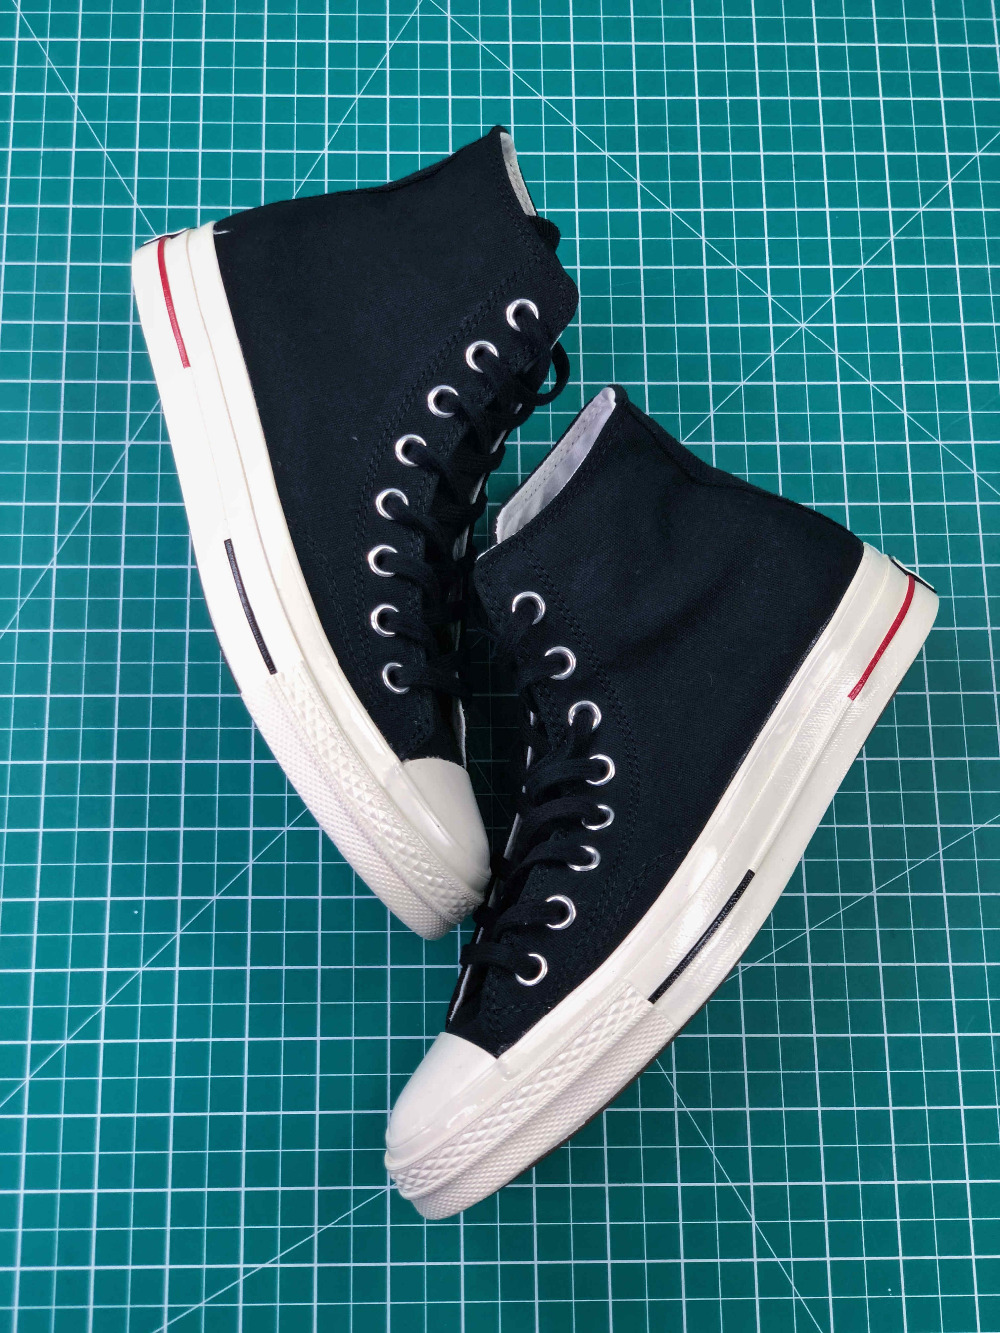 Converse All Star CDG X Chuck Taylor 1970s HiOX 18SS Skateboarding Shoes Sport Black High-Top Authentic For Men and Women converse all star cdg x chuck taylor 1970s hiox 18ss skateboarding white high top authentic for men and women casual shoes sport